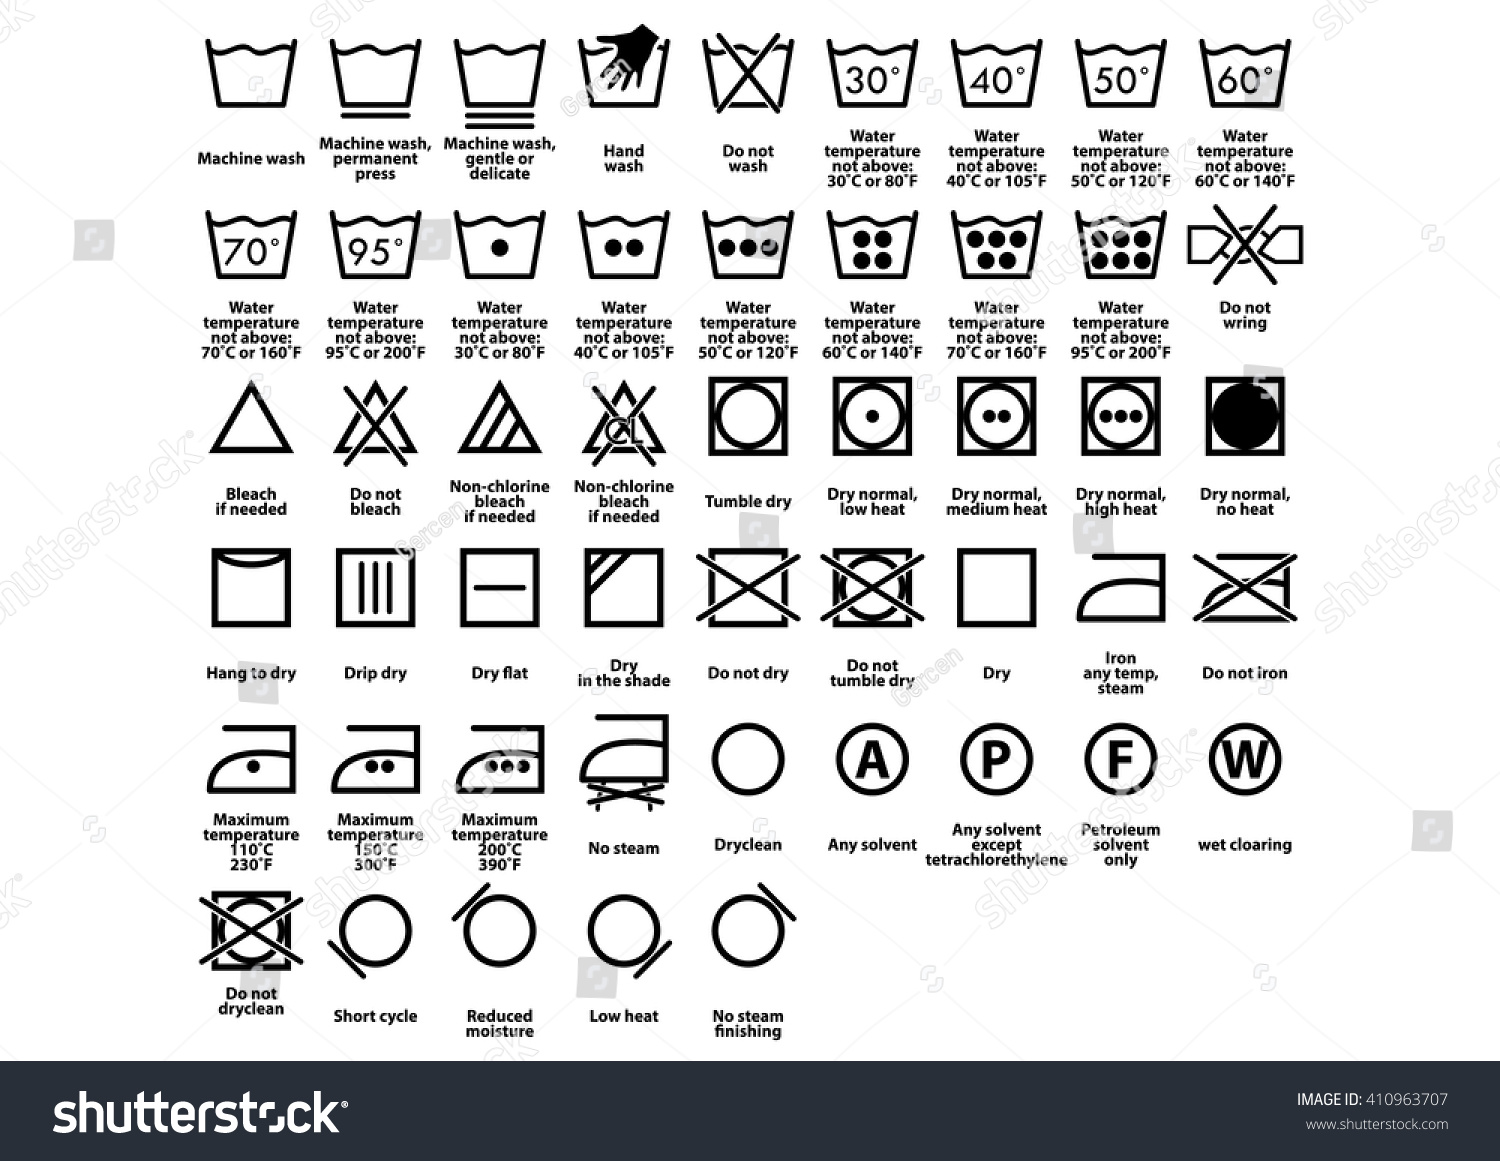 Laundry care instruction symbols biocorpaavc Image collections